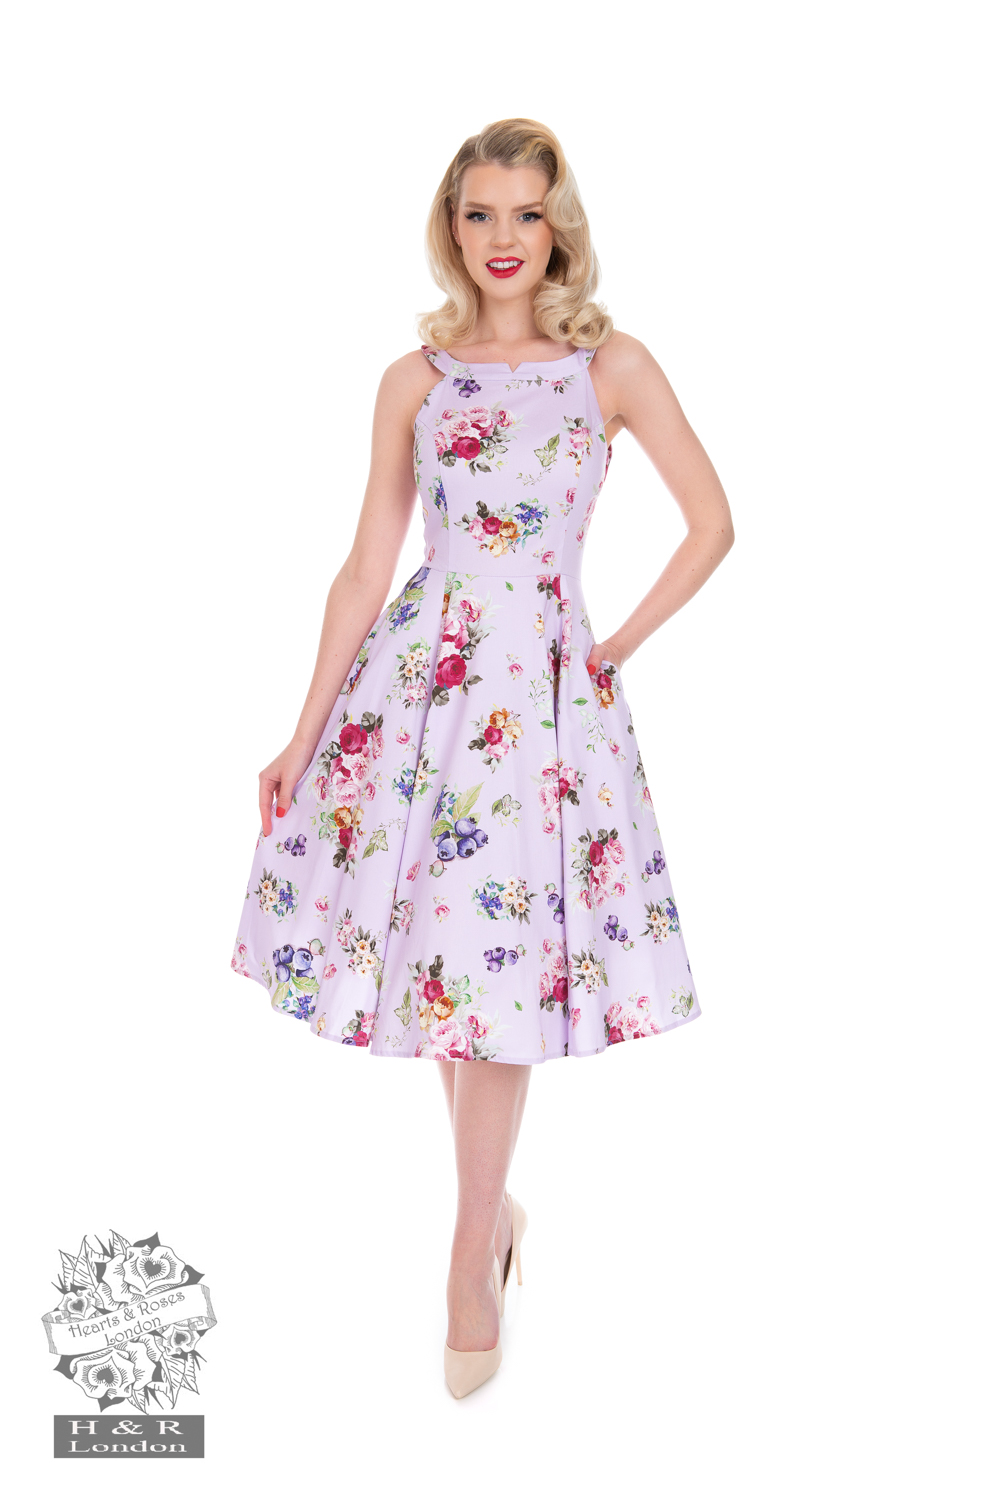 Heart&Roses  Annei swingdress stl XS-2XL